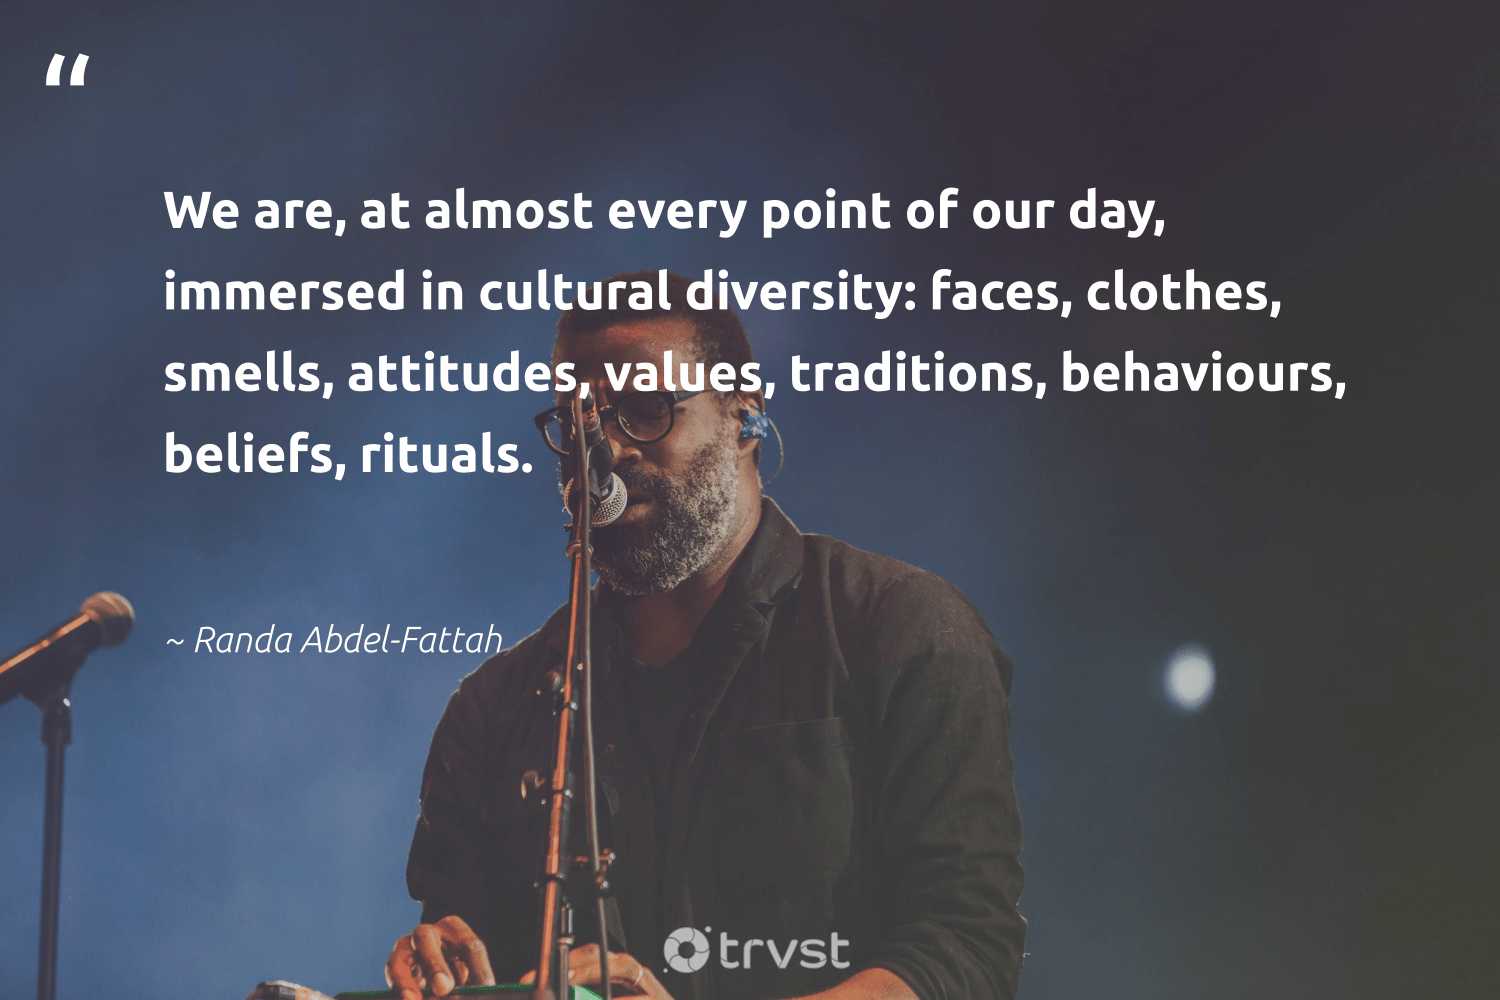 """We are, at almost every point of our day, immersed in cultural diversity: faces, clothes, smells, attitudes, values, traditions, behaviours, beliefs, rituals.""  - Randa Abdel-Fattah #trvst #quotes #giveback #gogreen #makeadifference #socialchange #bethechange #ecoconscious #socialgood #dosomething #weareallone #takeaction"